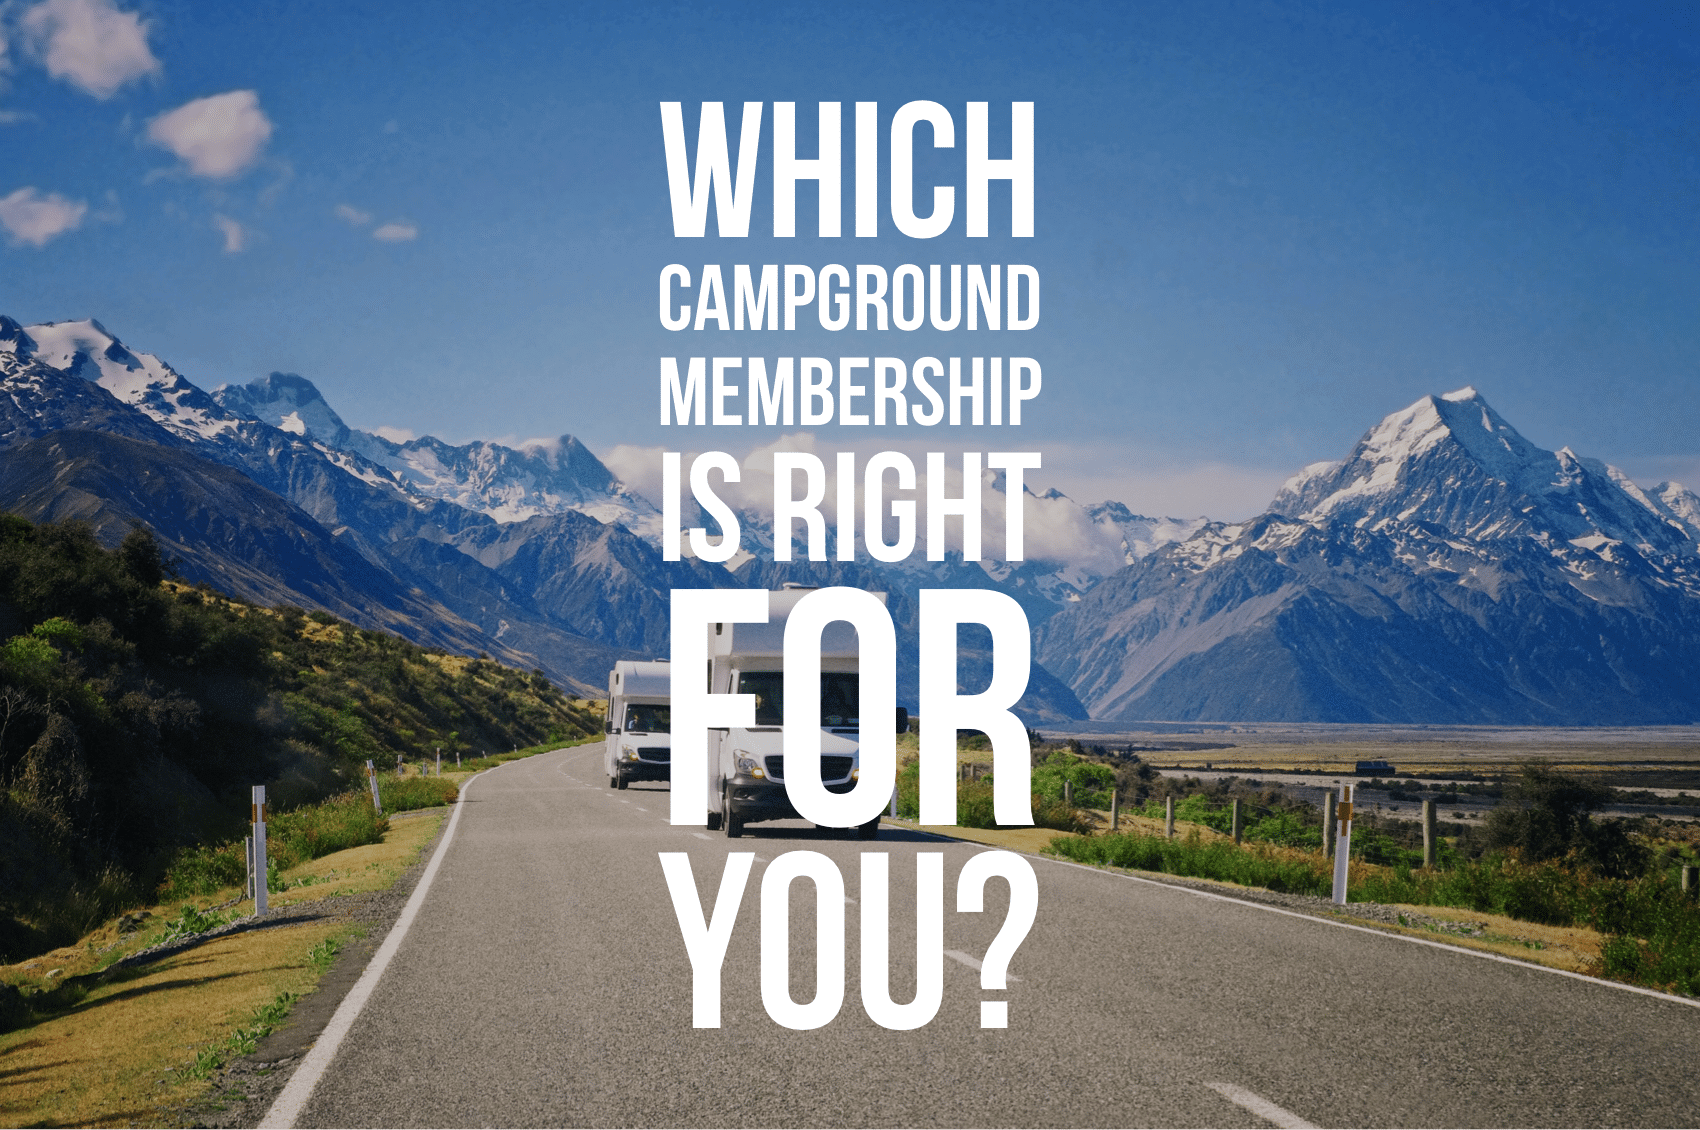 Which campground memberships are right for you